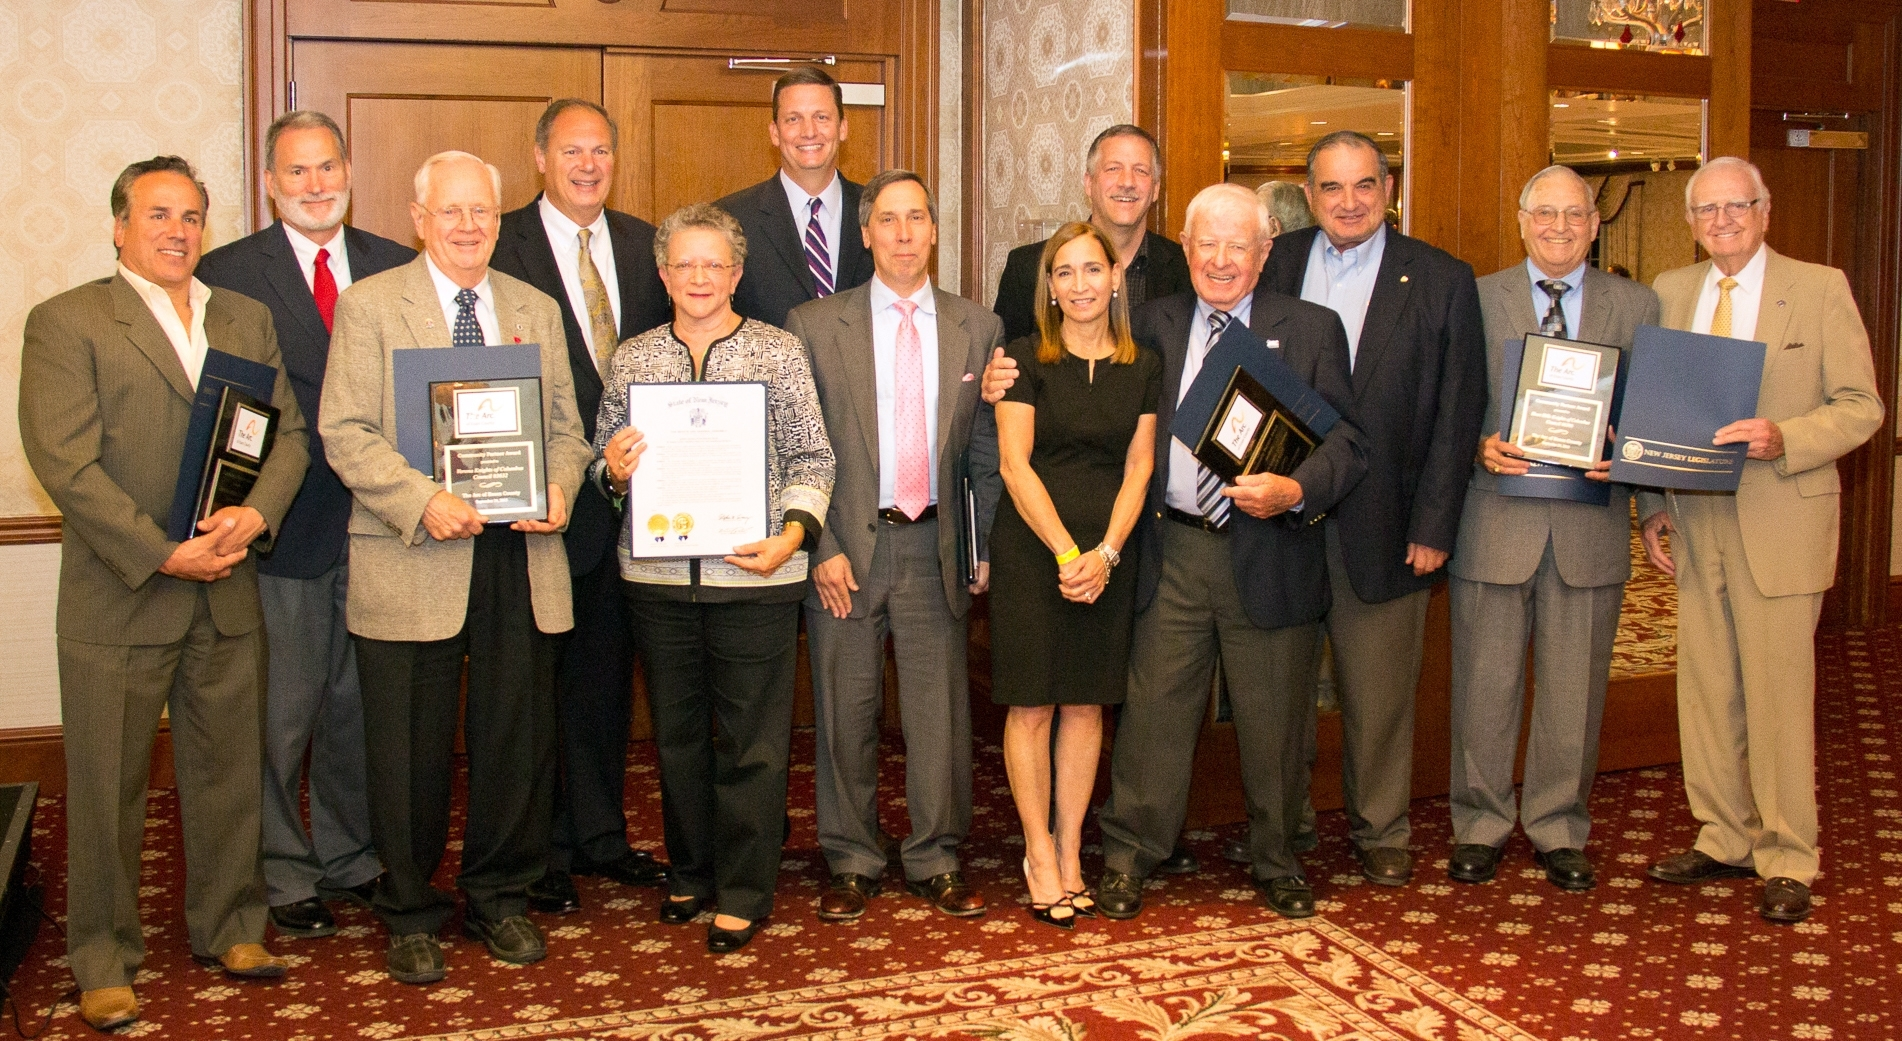 73a5bf949e32bb1158dd_9-24-15_The_Arc_Of_Essex_-_All_Honorees.jpg